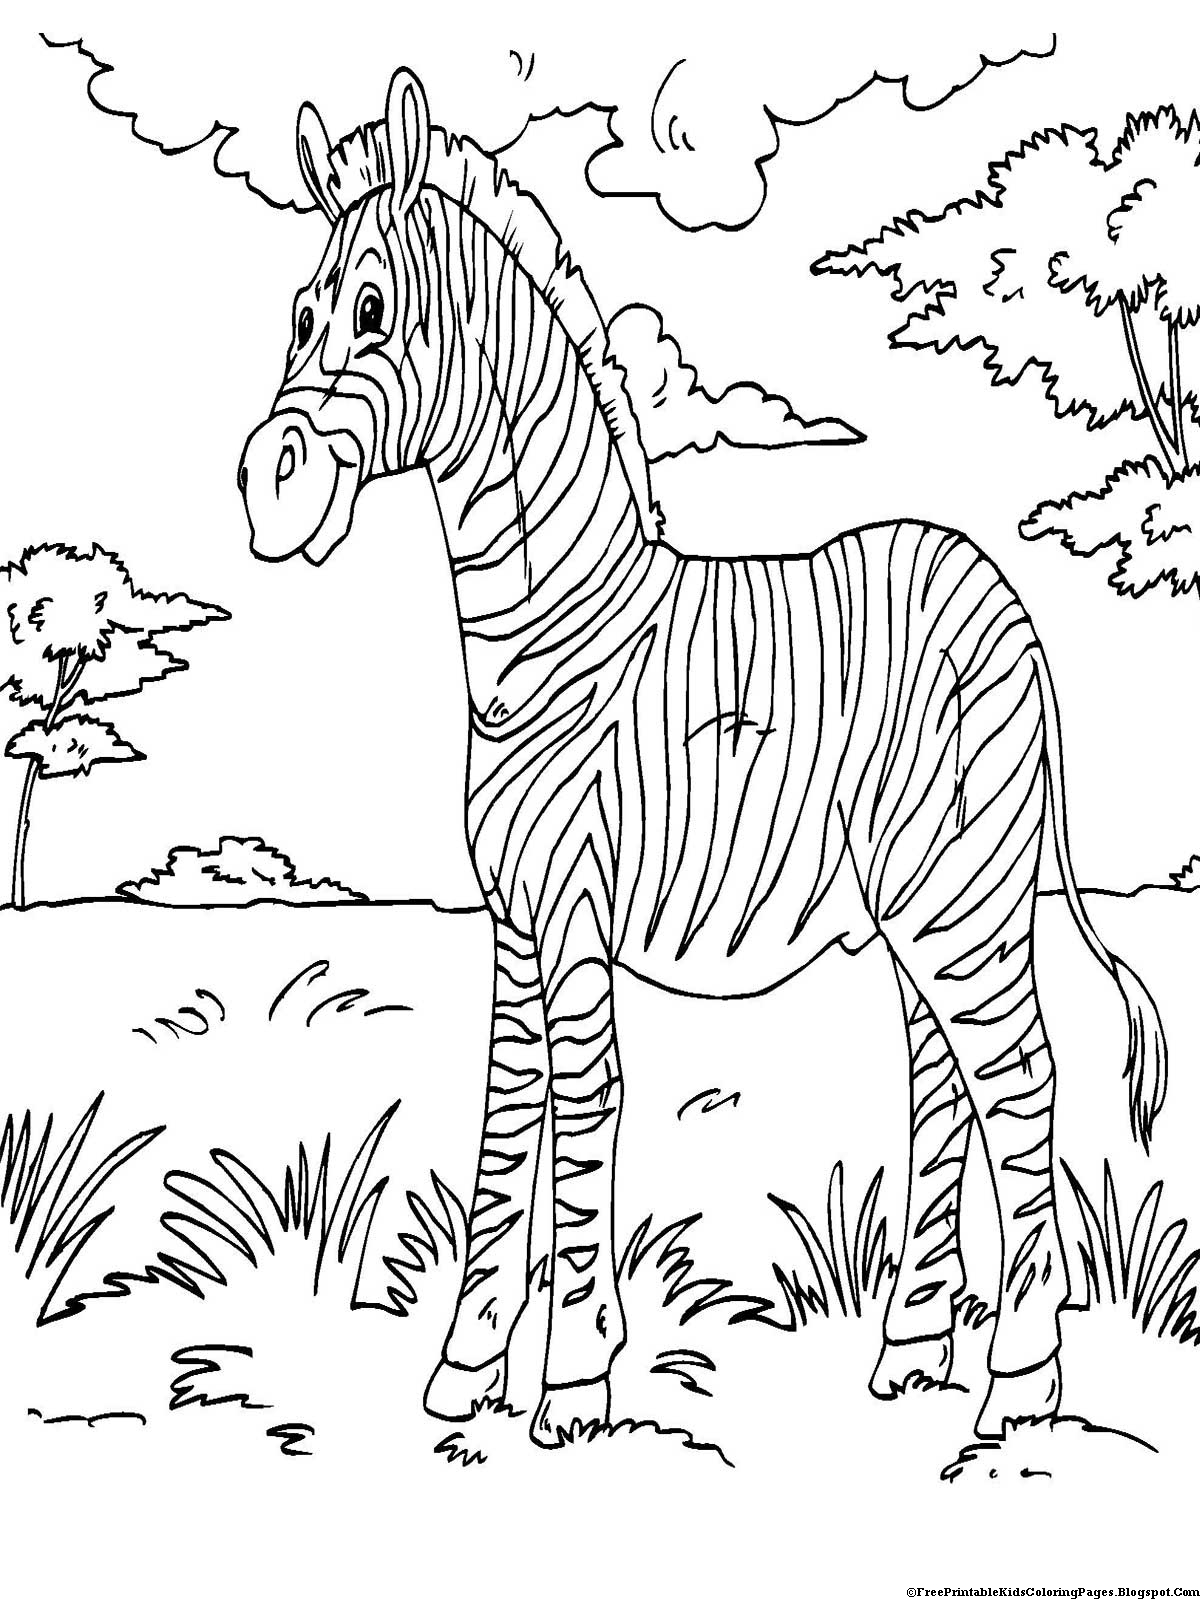 childrens colouring pictures free printable tangled coloring pages for kids pictures childrens colouring